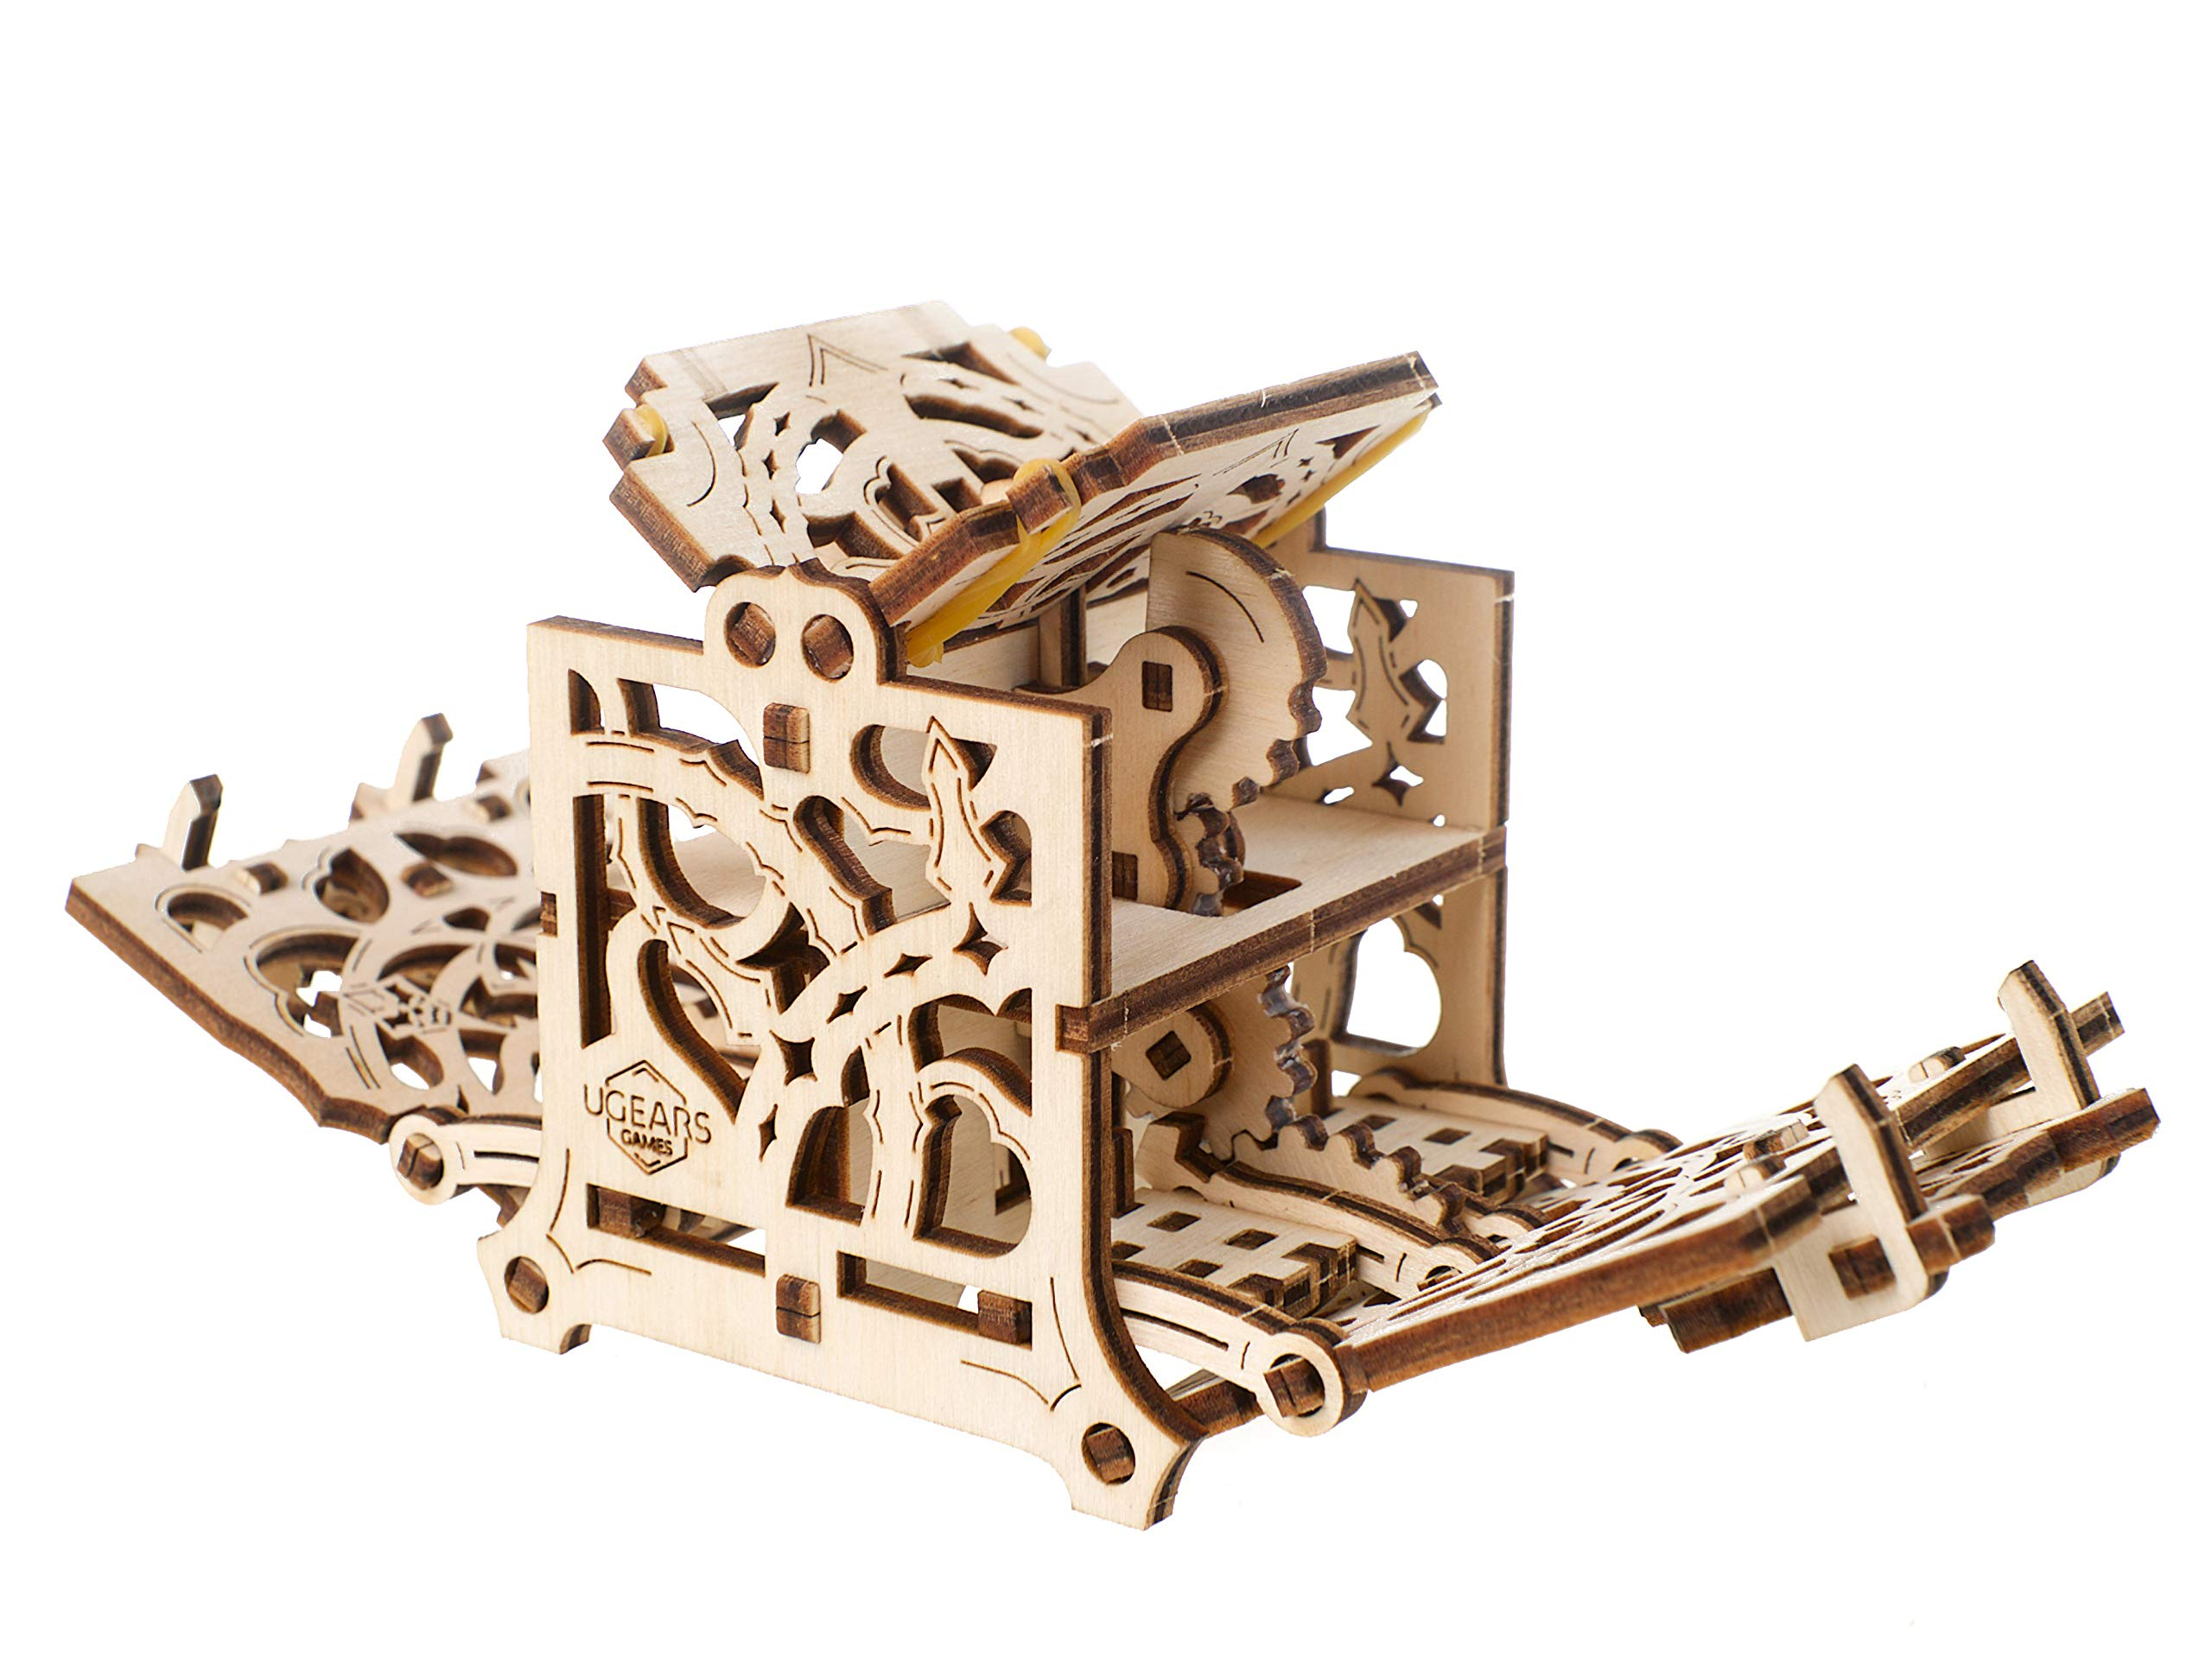 Ugears Dice Keeper - Wooden Box for Self Assembling, DIY Game Accessory to Keep Dice Safe by UGEARS